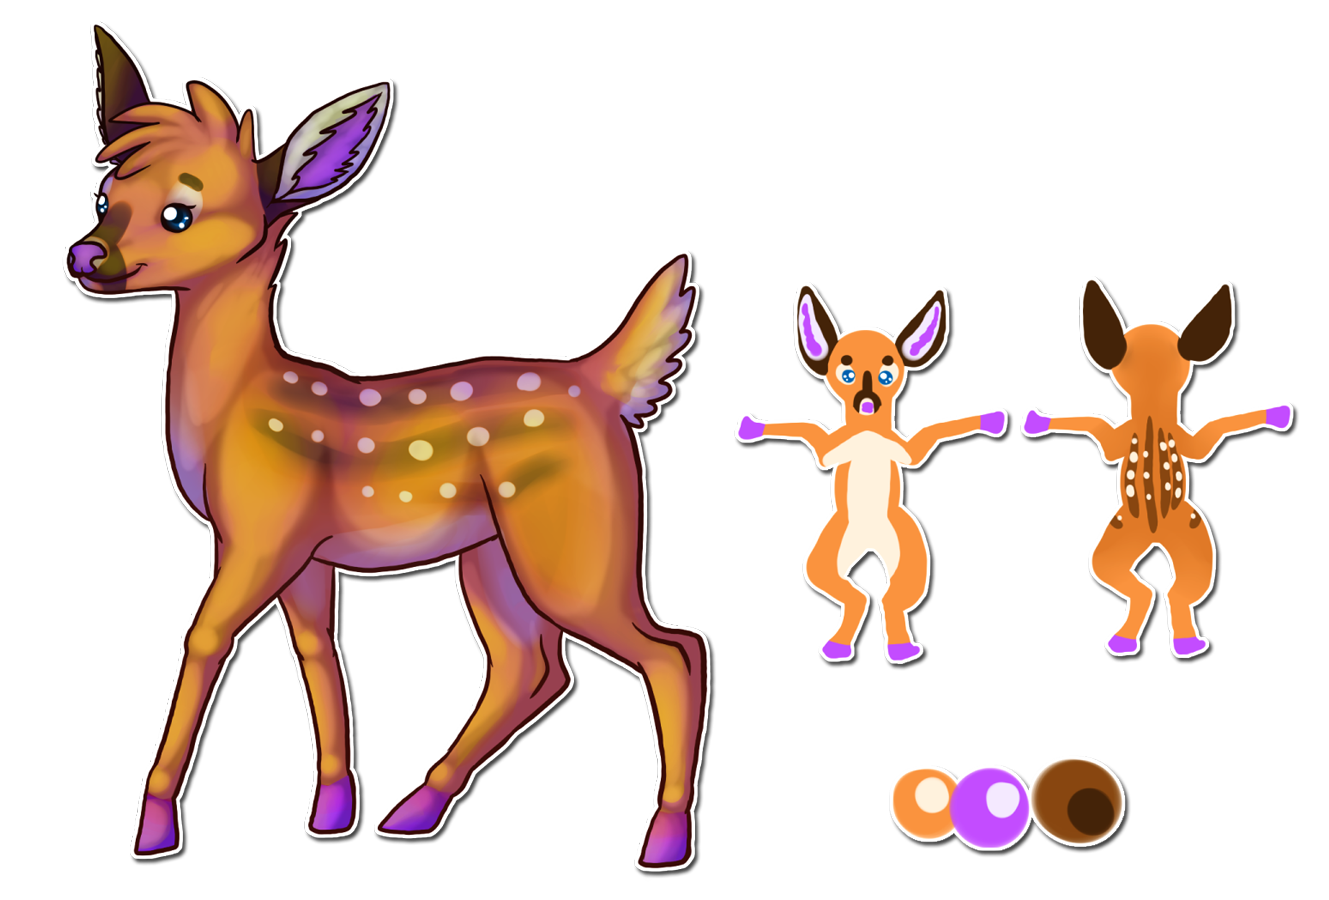 Design commission by bakamichi. Deer clipart roe deer